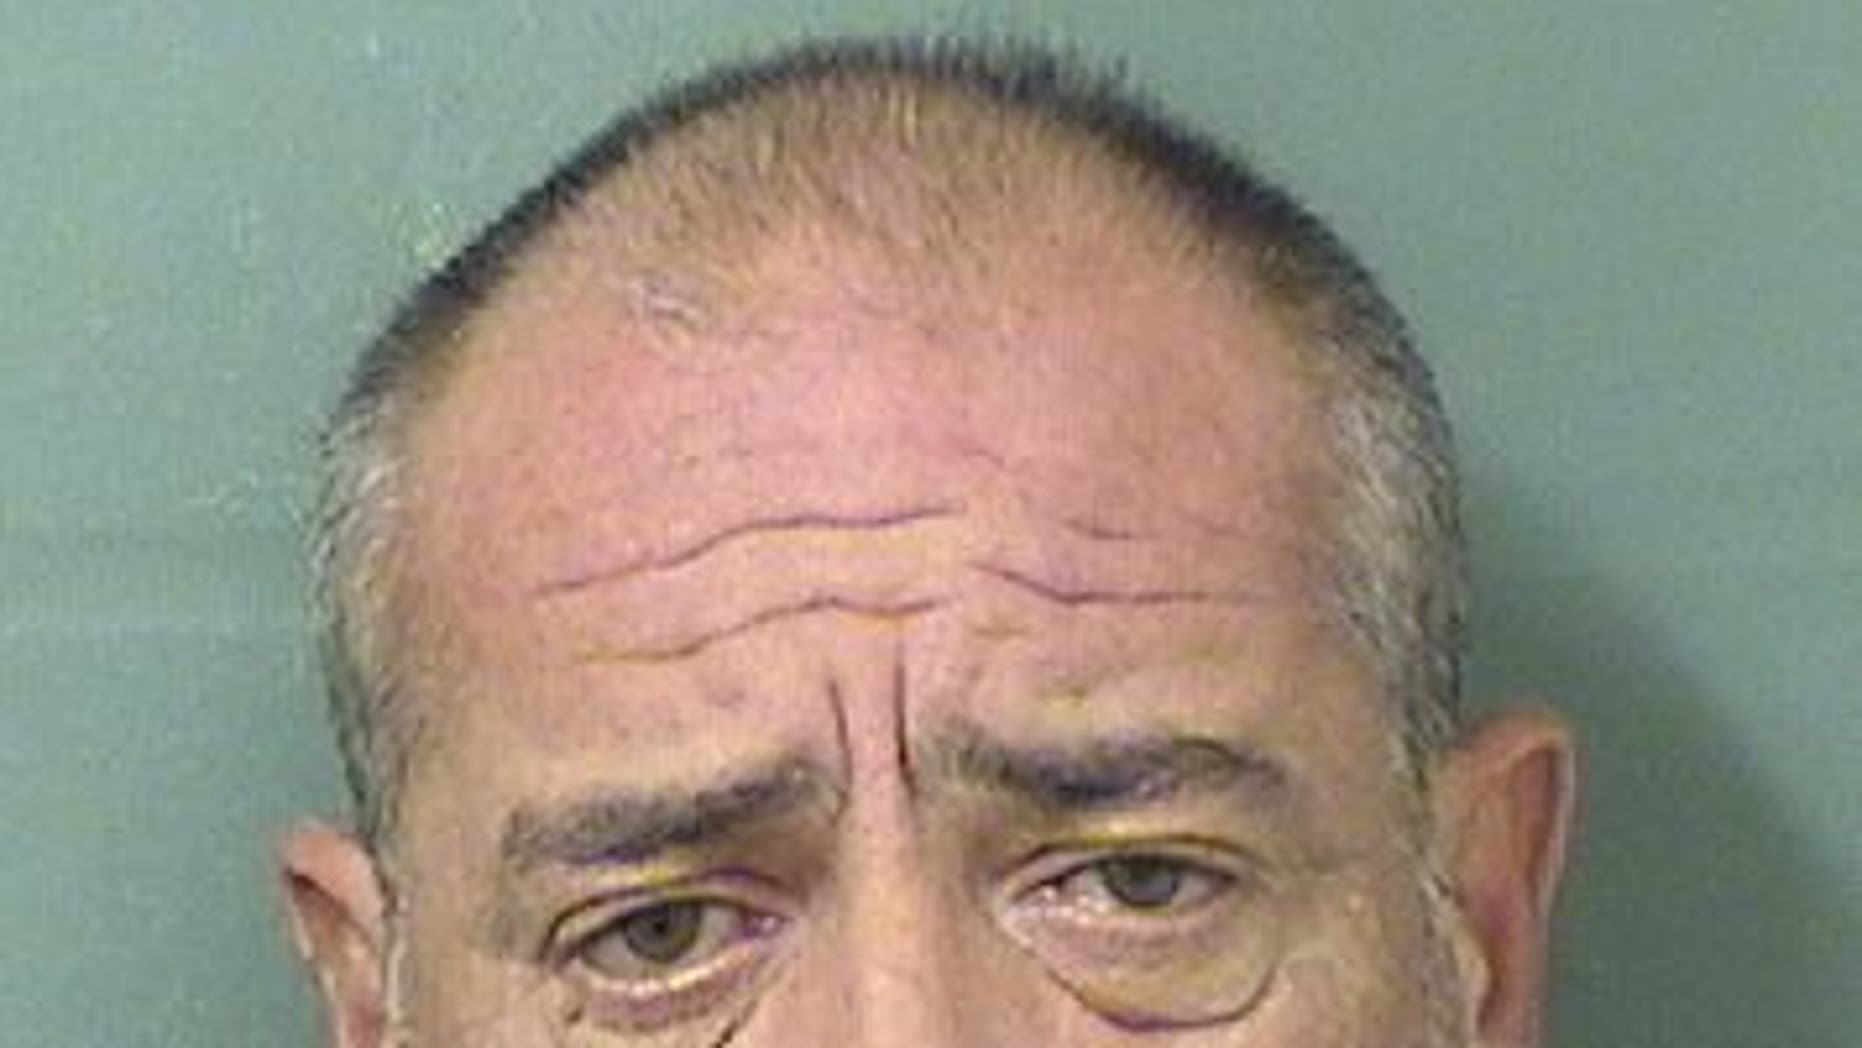 Jon Omer Sengul, 50, was arrested and charged with soliciting a prostitute.